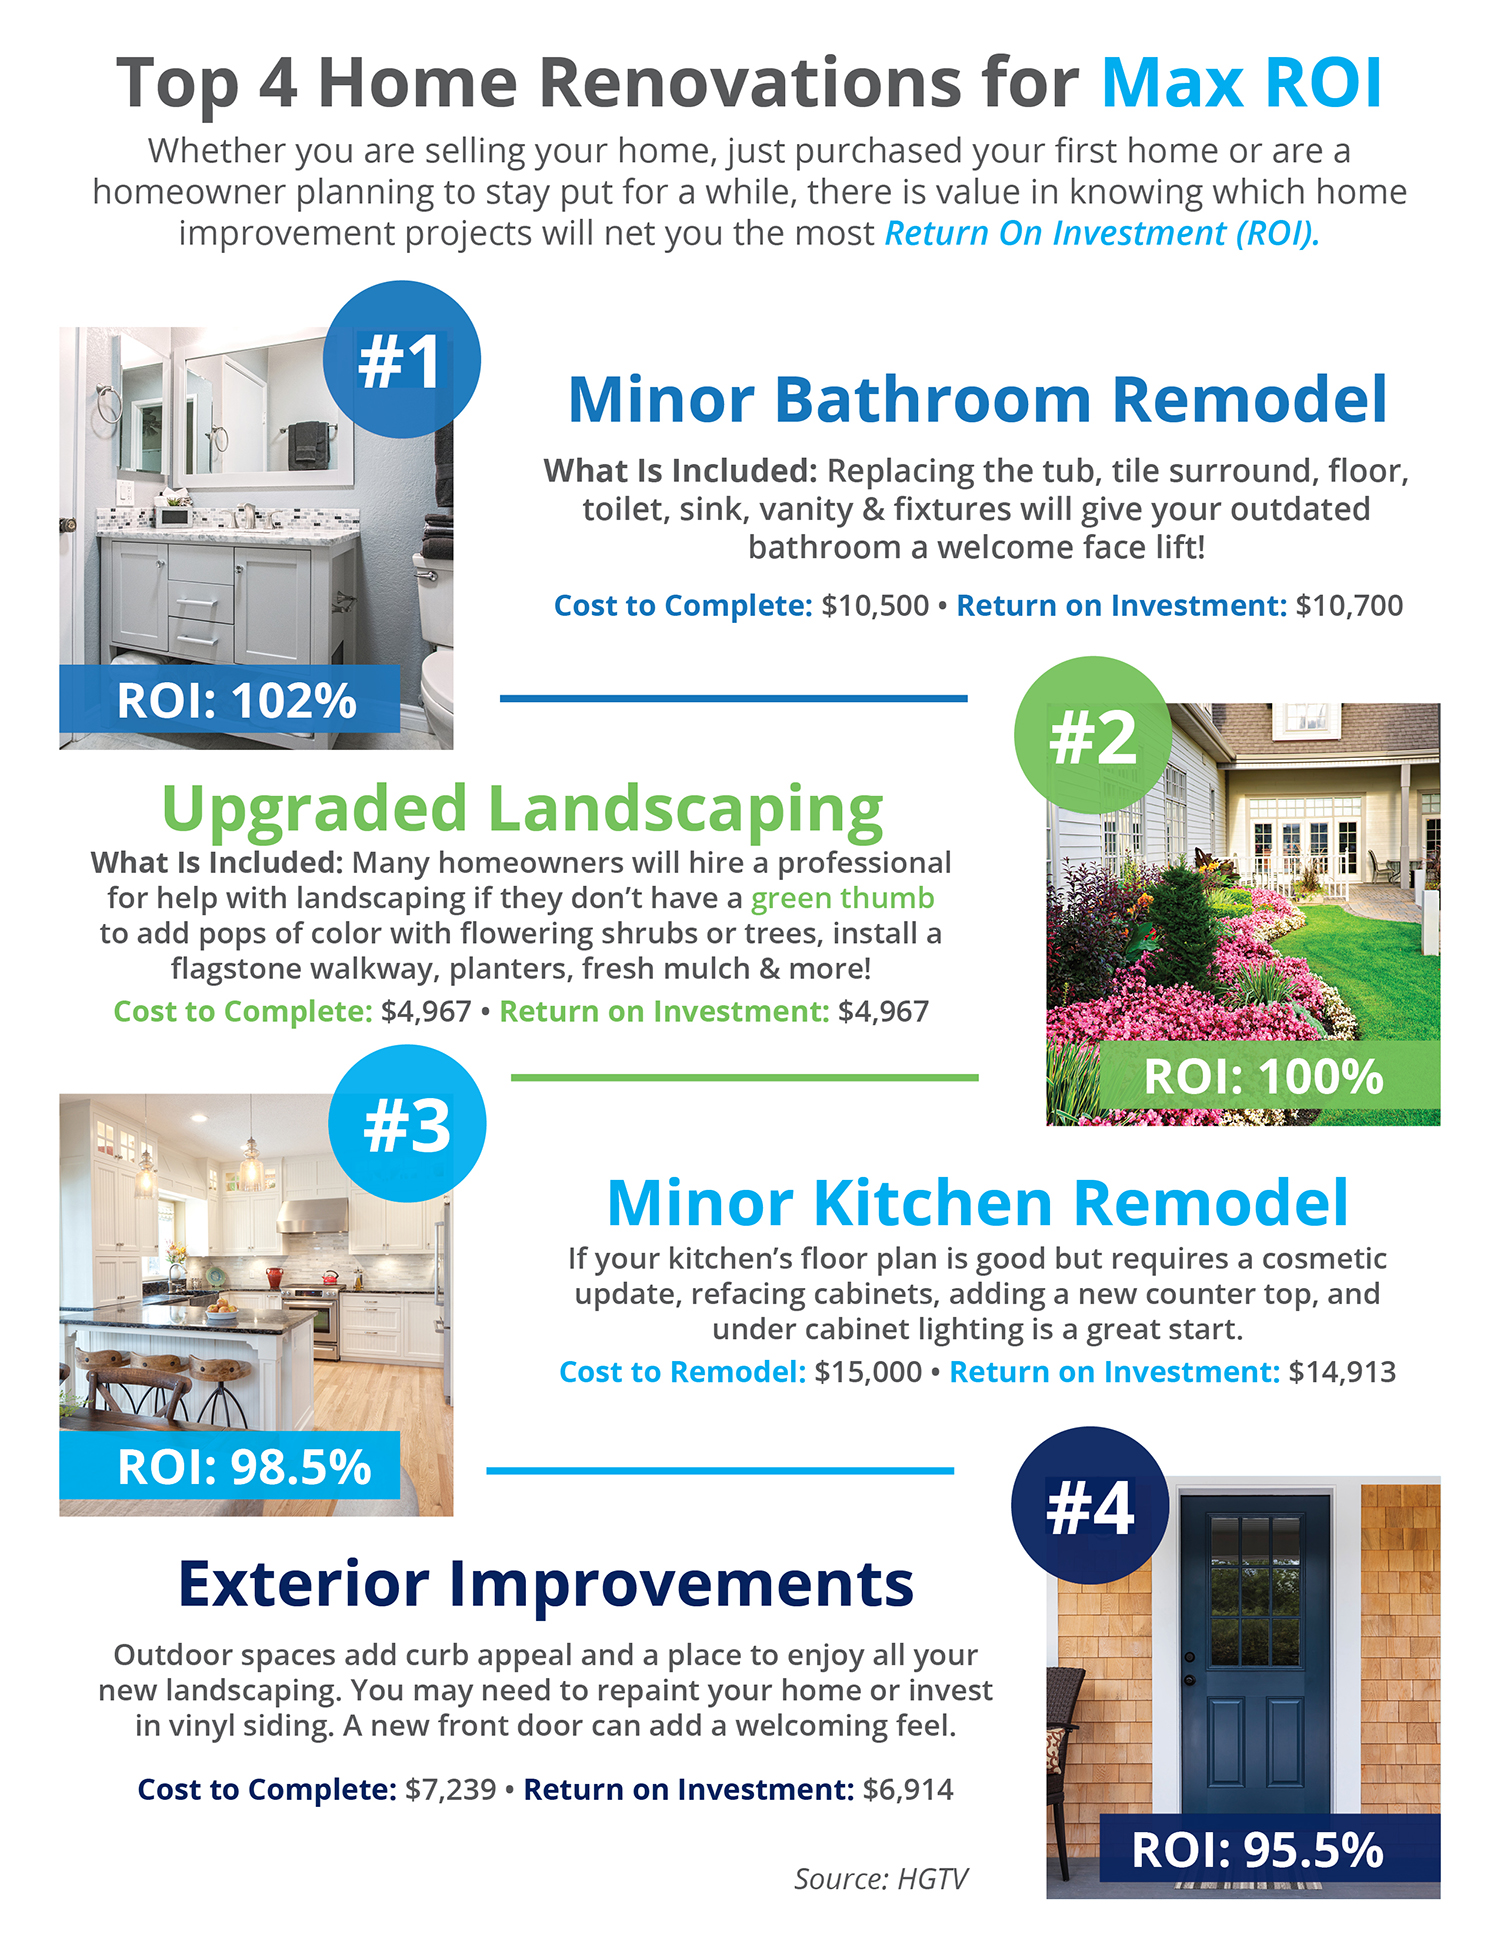 Top 4 Home Renovations for Max ROI [INFOGRAPHIC]   Simplifying The Market